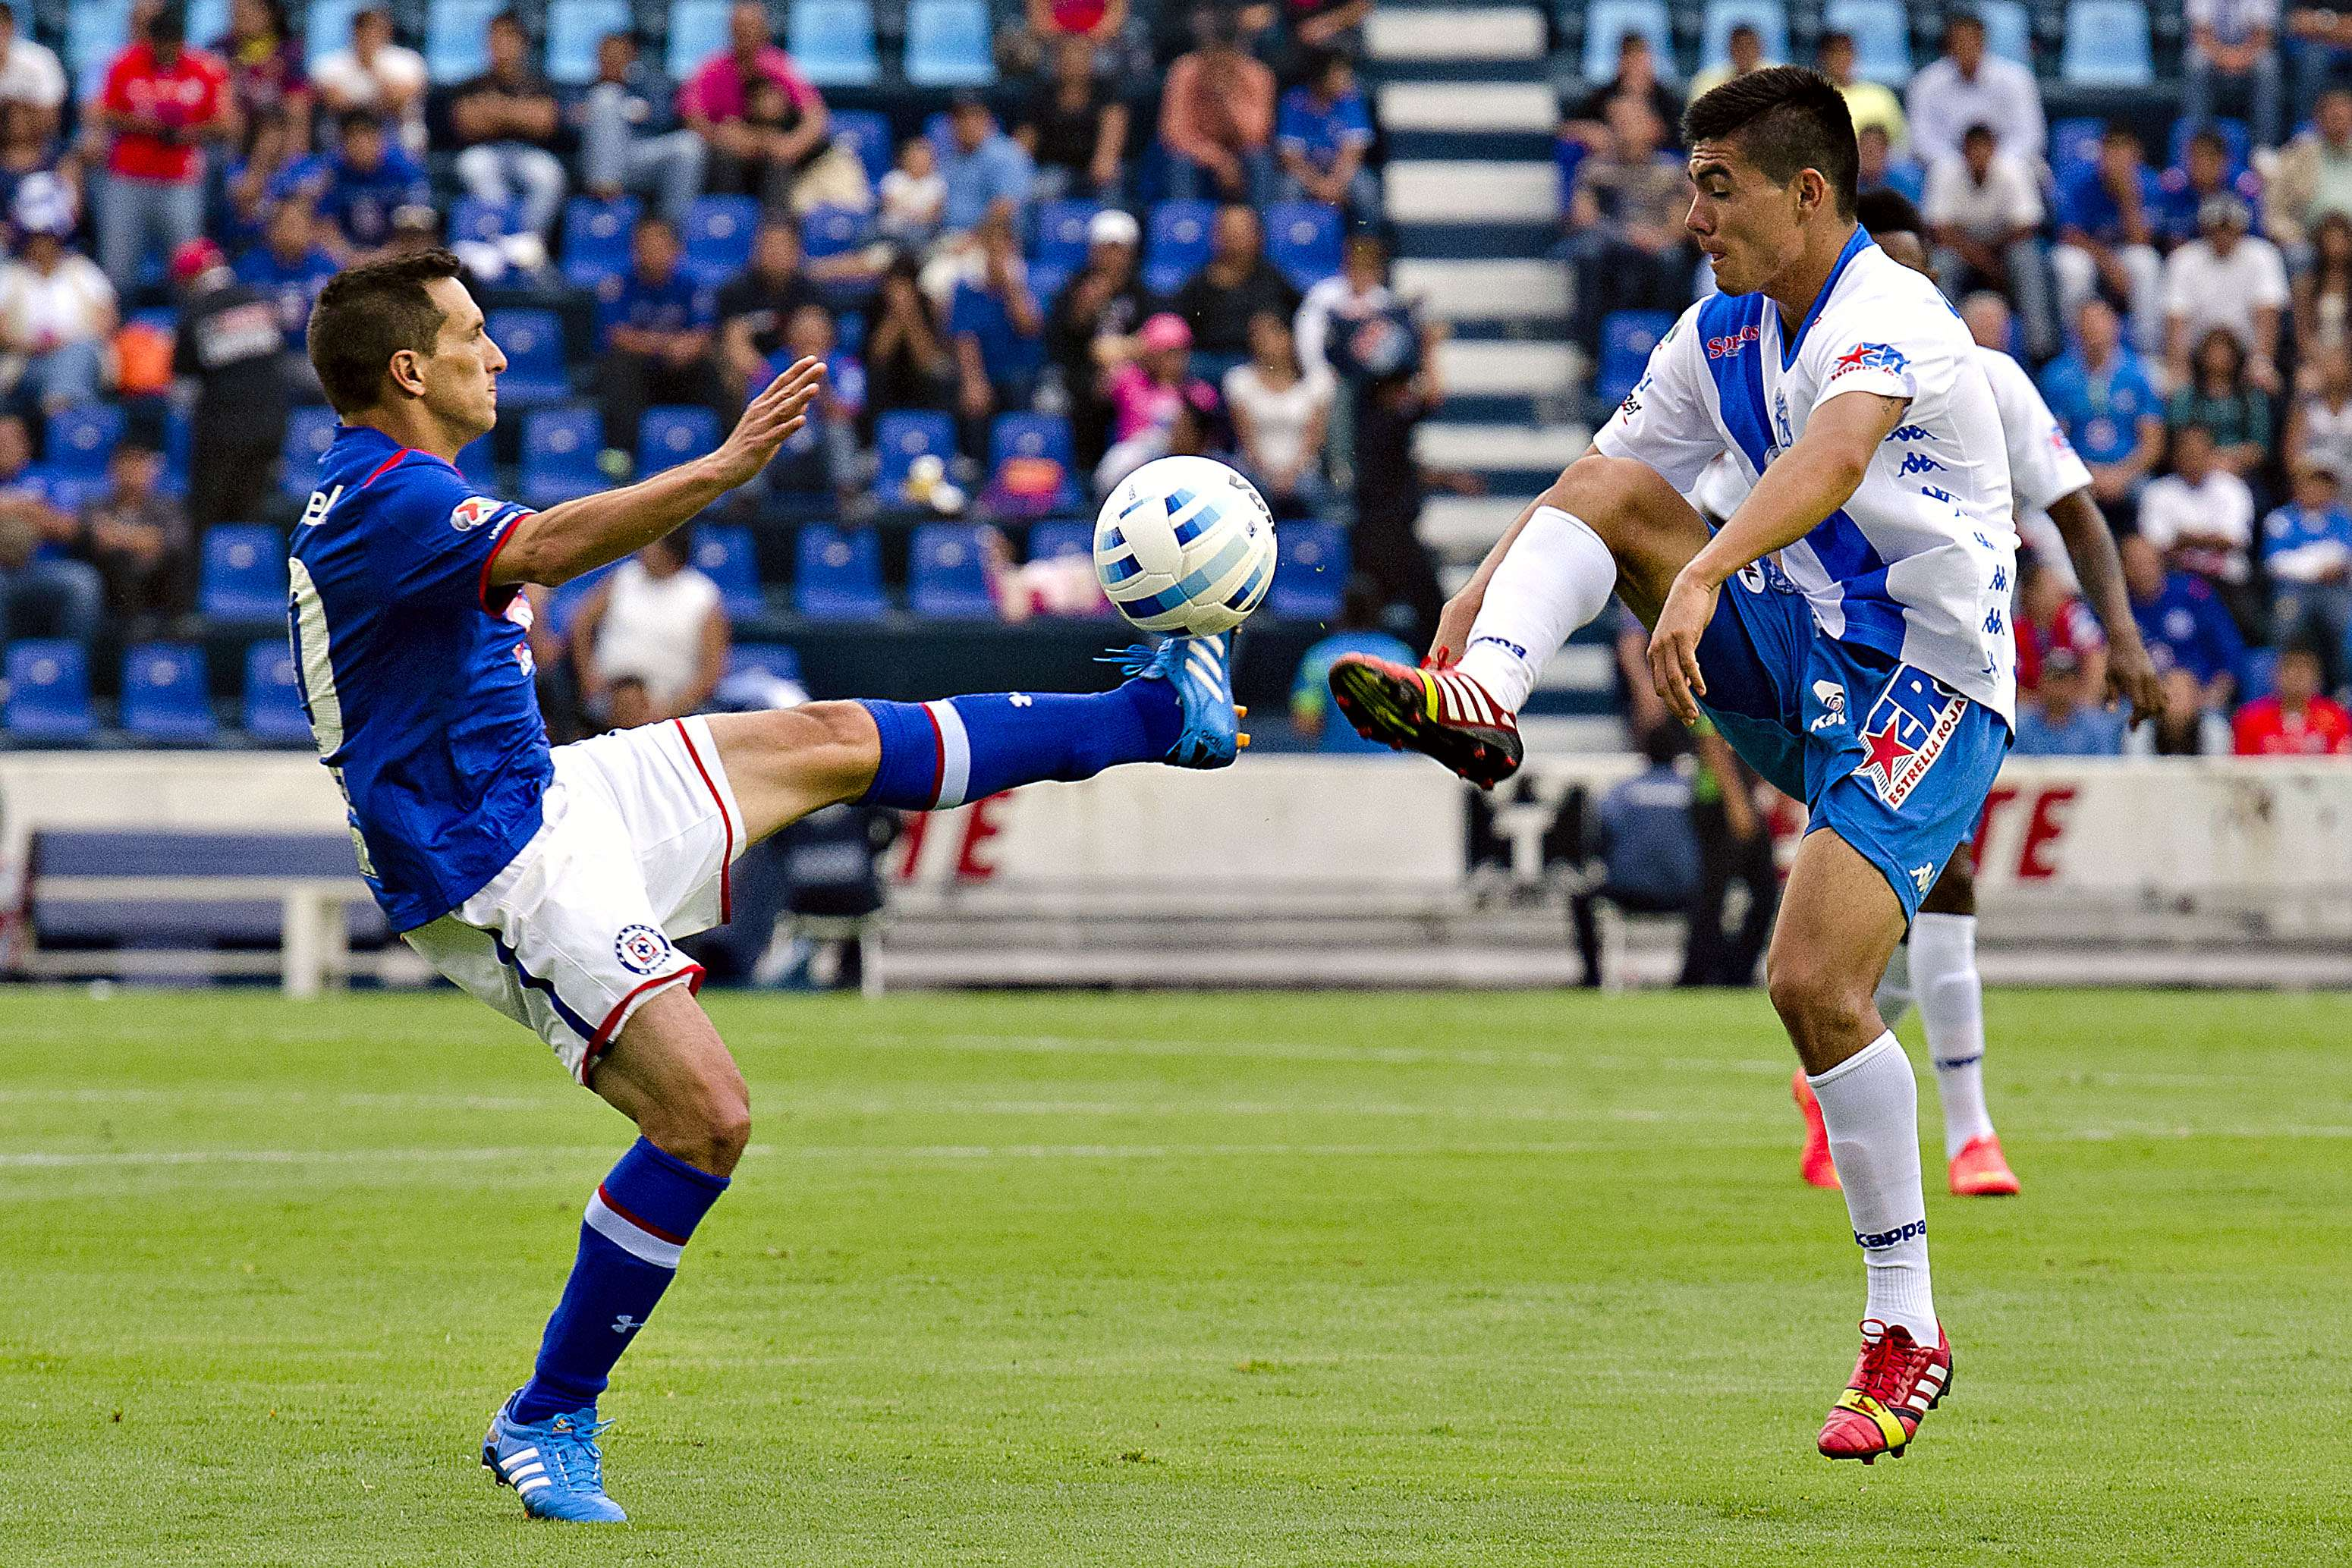 Puebla vs. Cruz Azul Foto: Mexsport